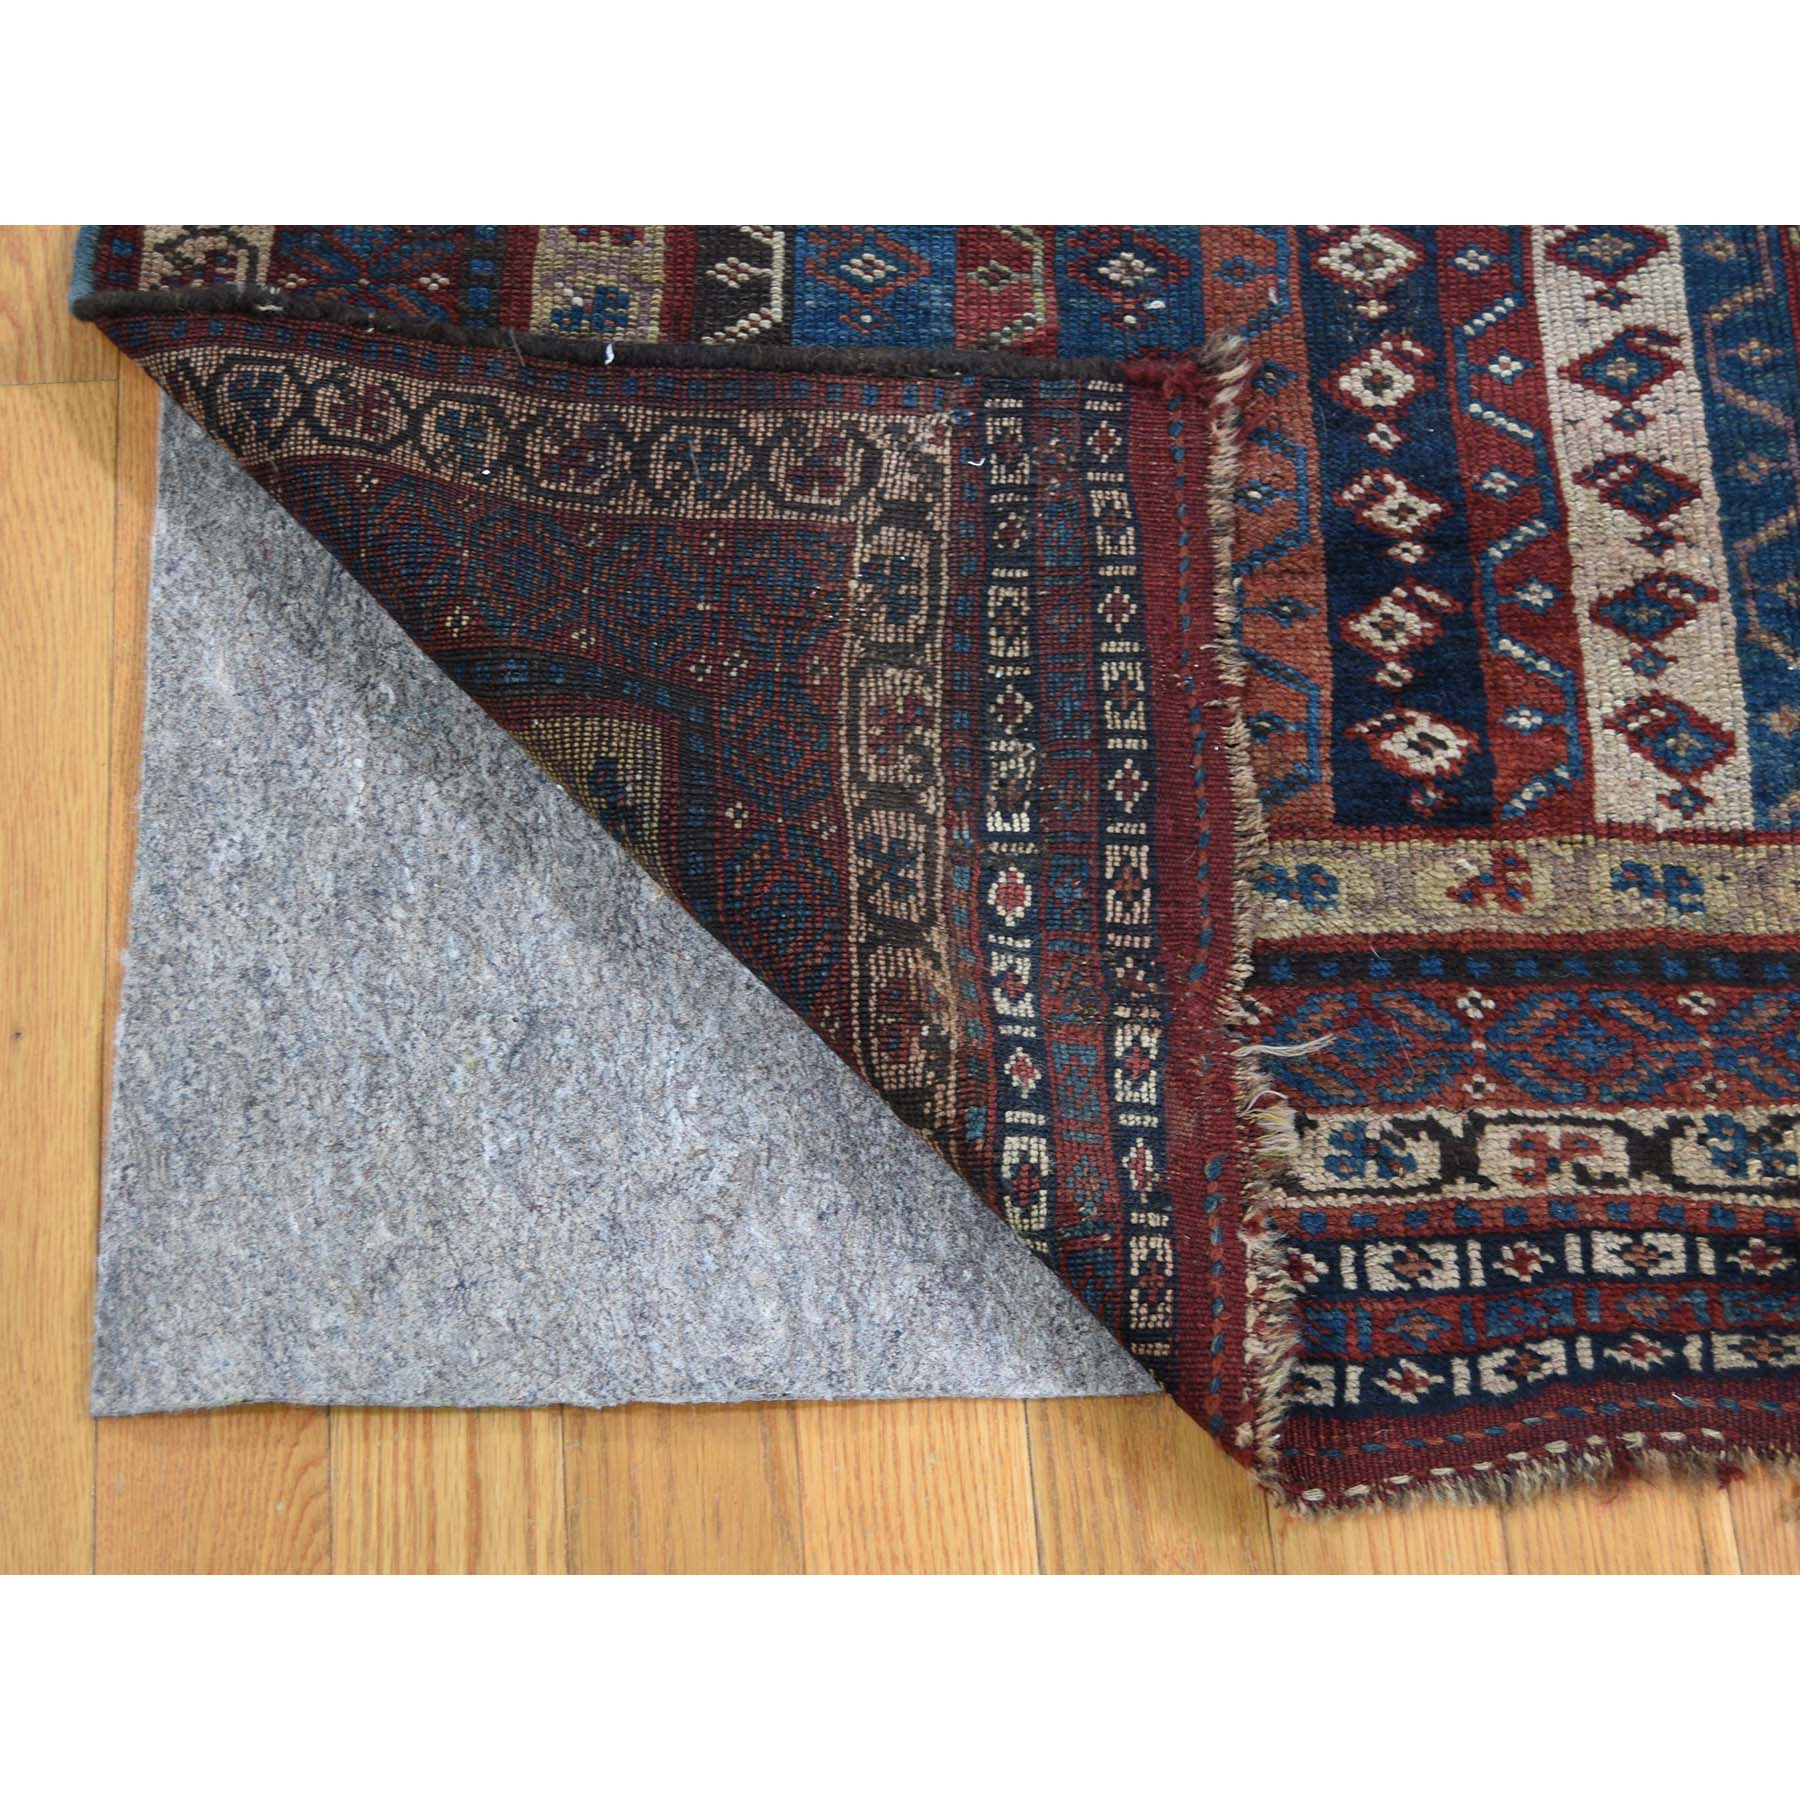 4-10 x11-8  Antique Persian Tribal Lori Buft With Shawl Design Wide Runner Hand-Knotted Oriental Rug